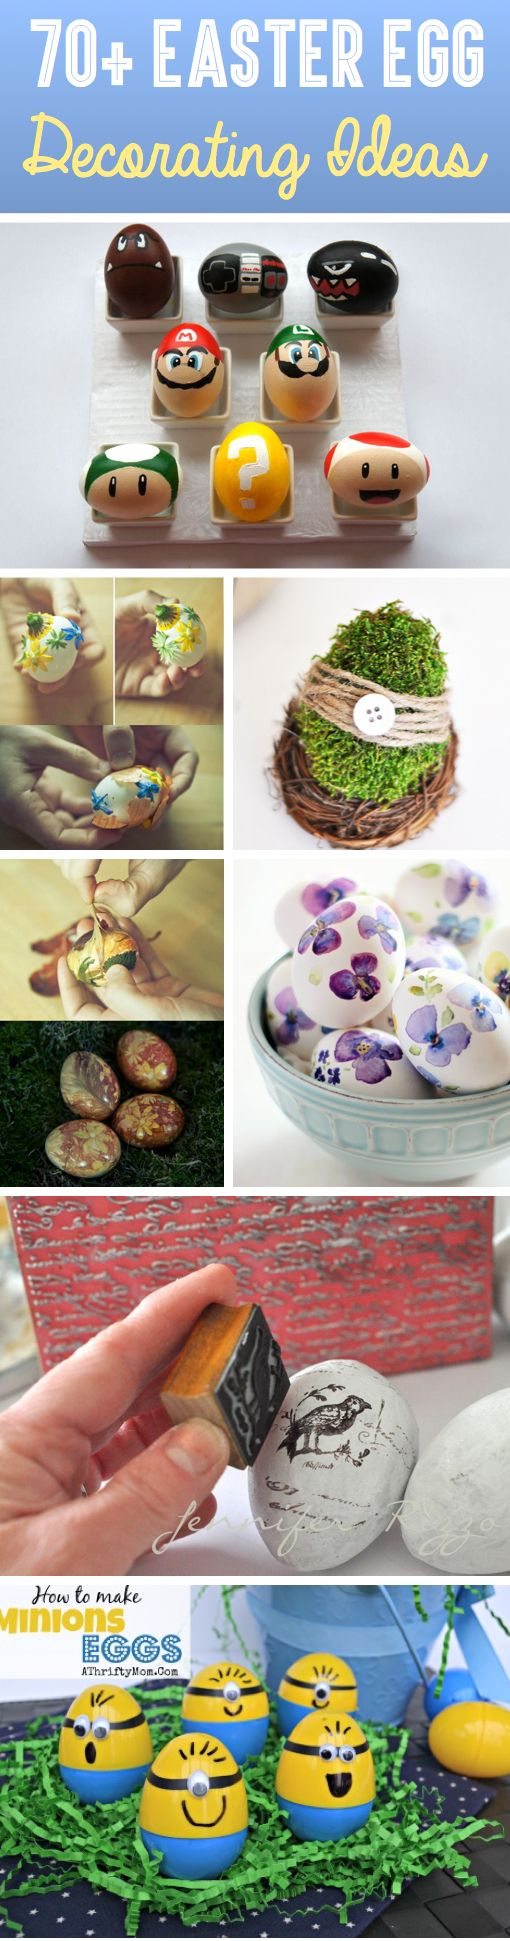 70+ Easter Egg Decorating Ideas For The Artist Hidden Inside You! // 70 ideas para decorar huevos de Pascua, para el artista que hay en tí